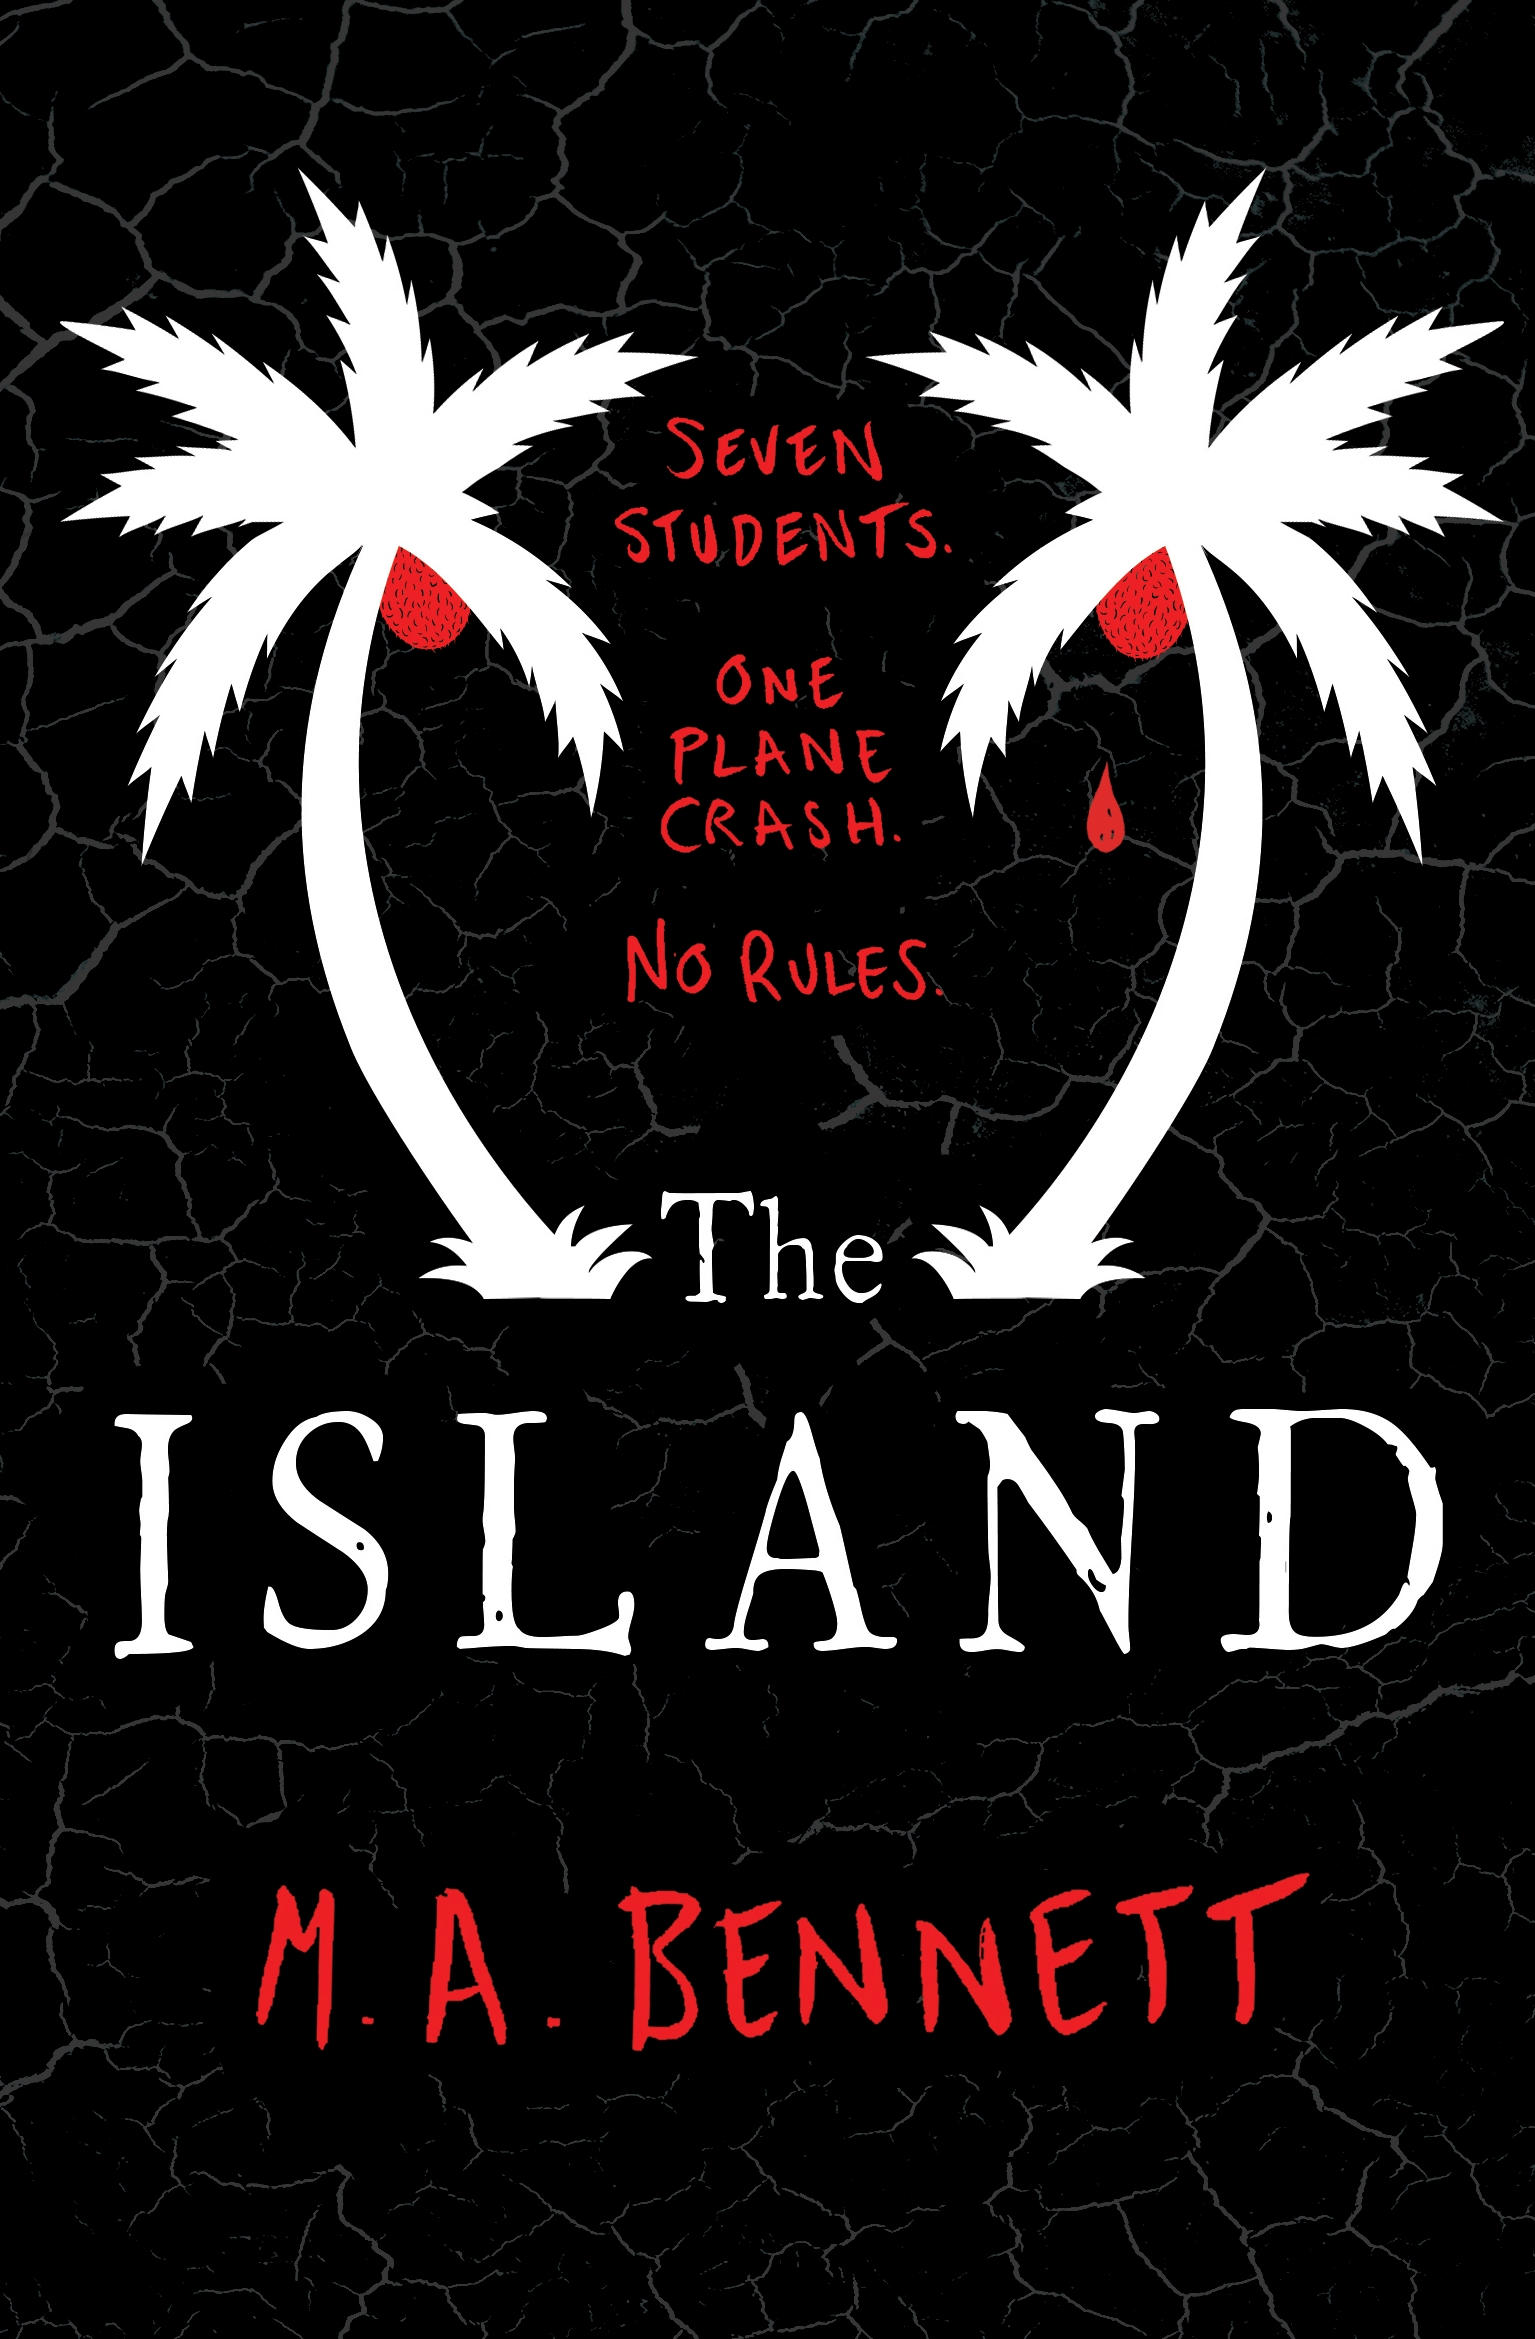 The Island by M. A. Bennett